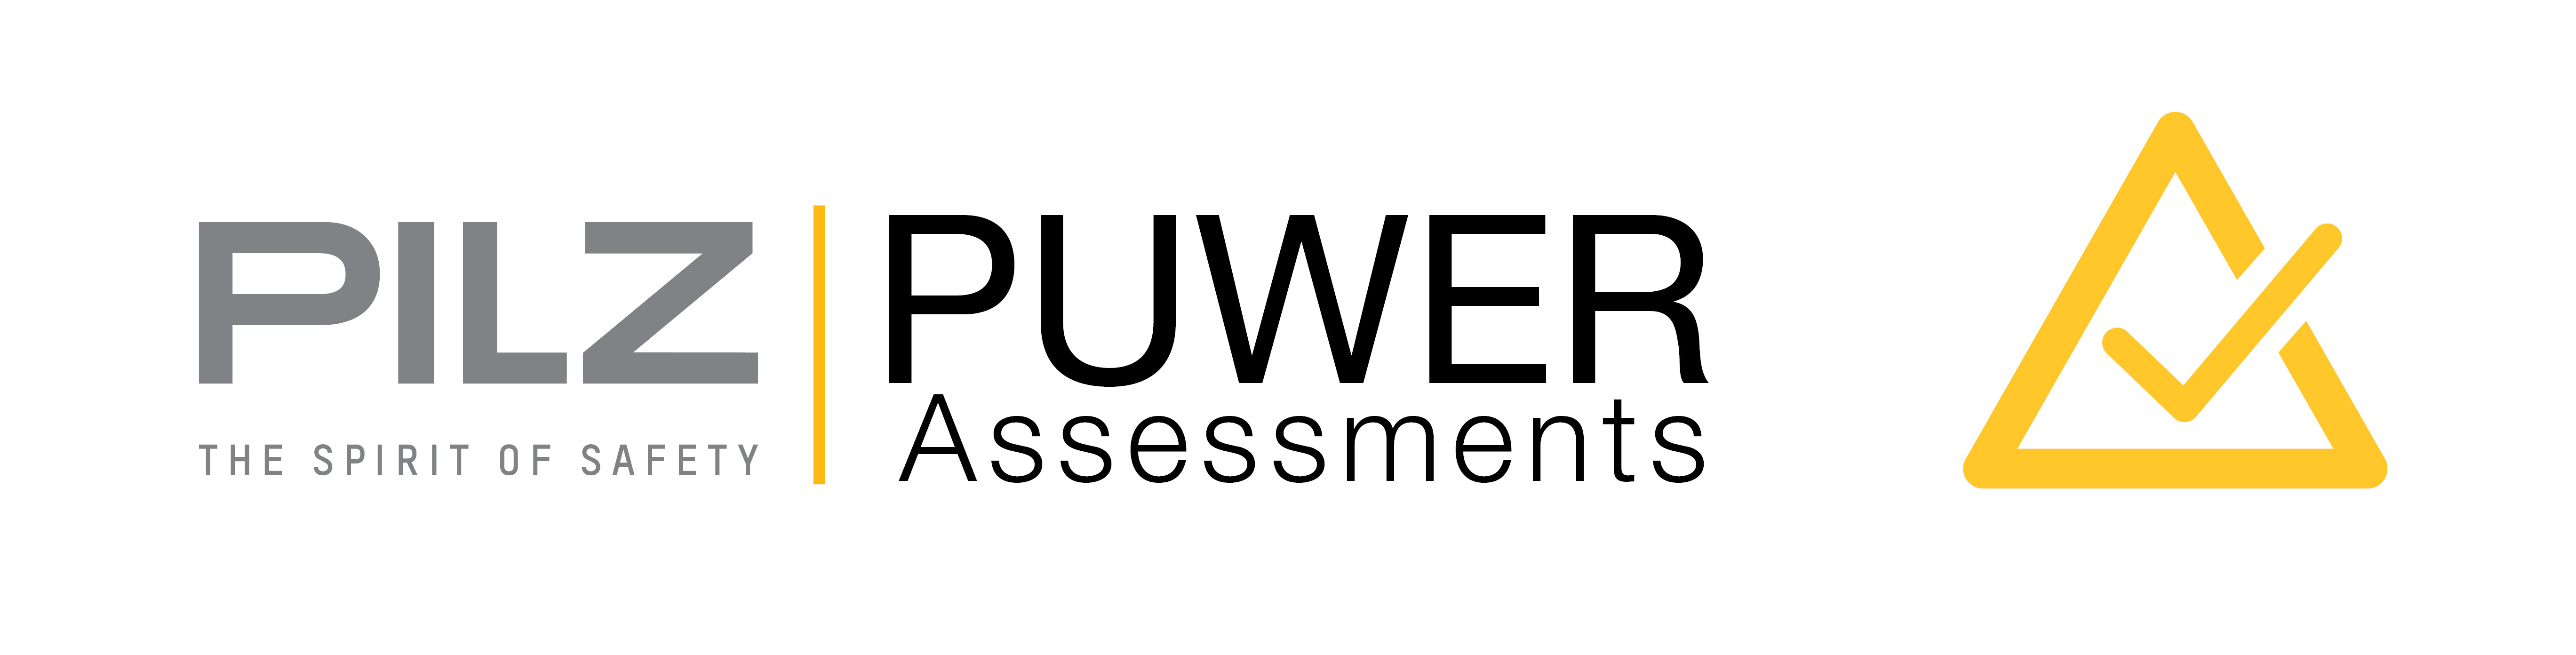 Puwer Risk Assessment Spreadsheet Intended For Puwer Assessments From Pilz  Pilz Gb